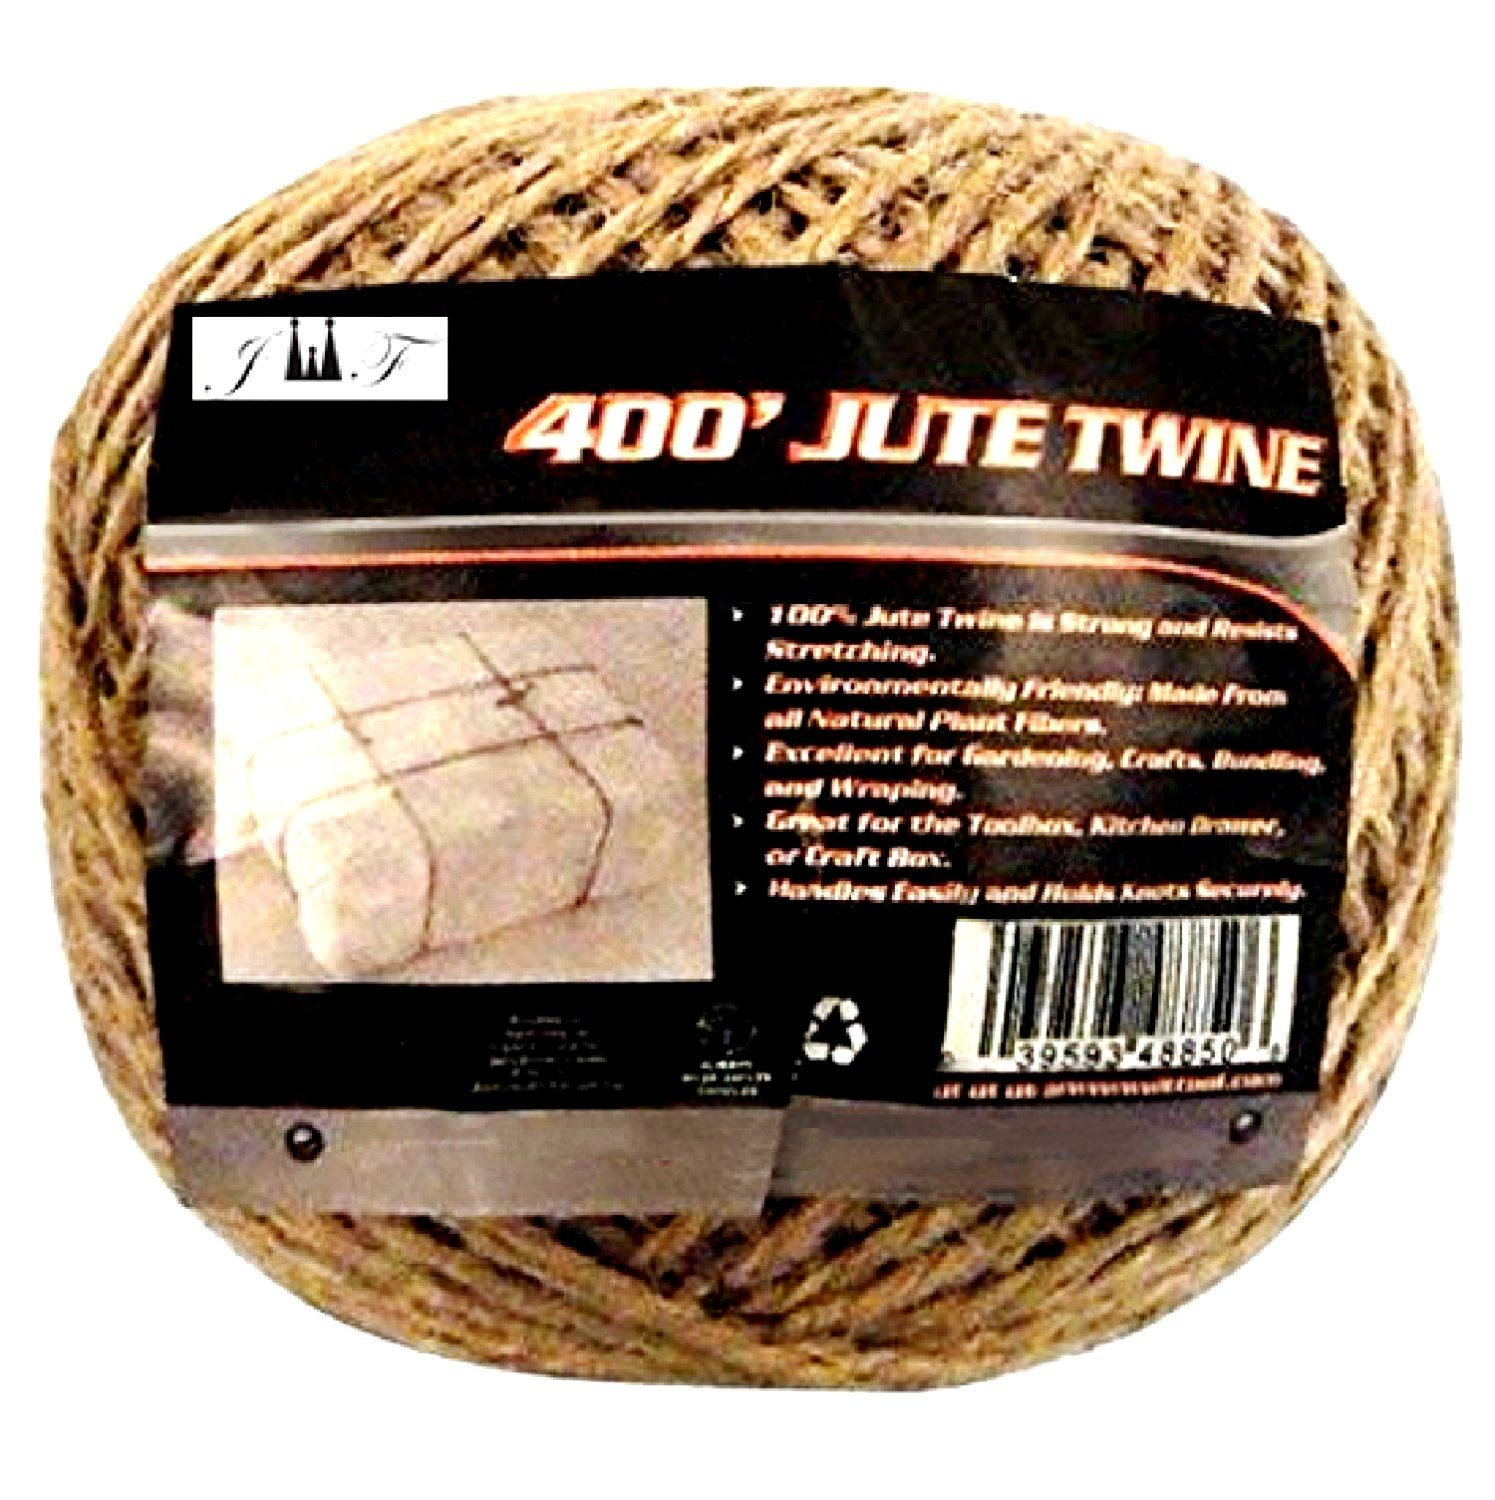 JEWELS FASHION 400Ft Brown Jute Twine-Strong,Heavy Duuty, Durable,Natural, Biodegradable-for Industrial, Packaging, Arts& Crafts, Hobby, Gifts, Decoration, Bundling, Gardening &Home Use